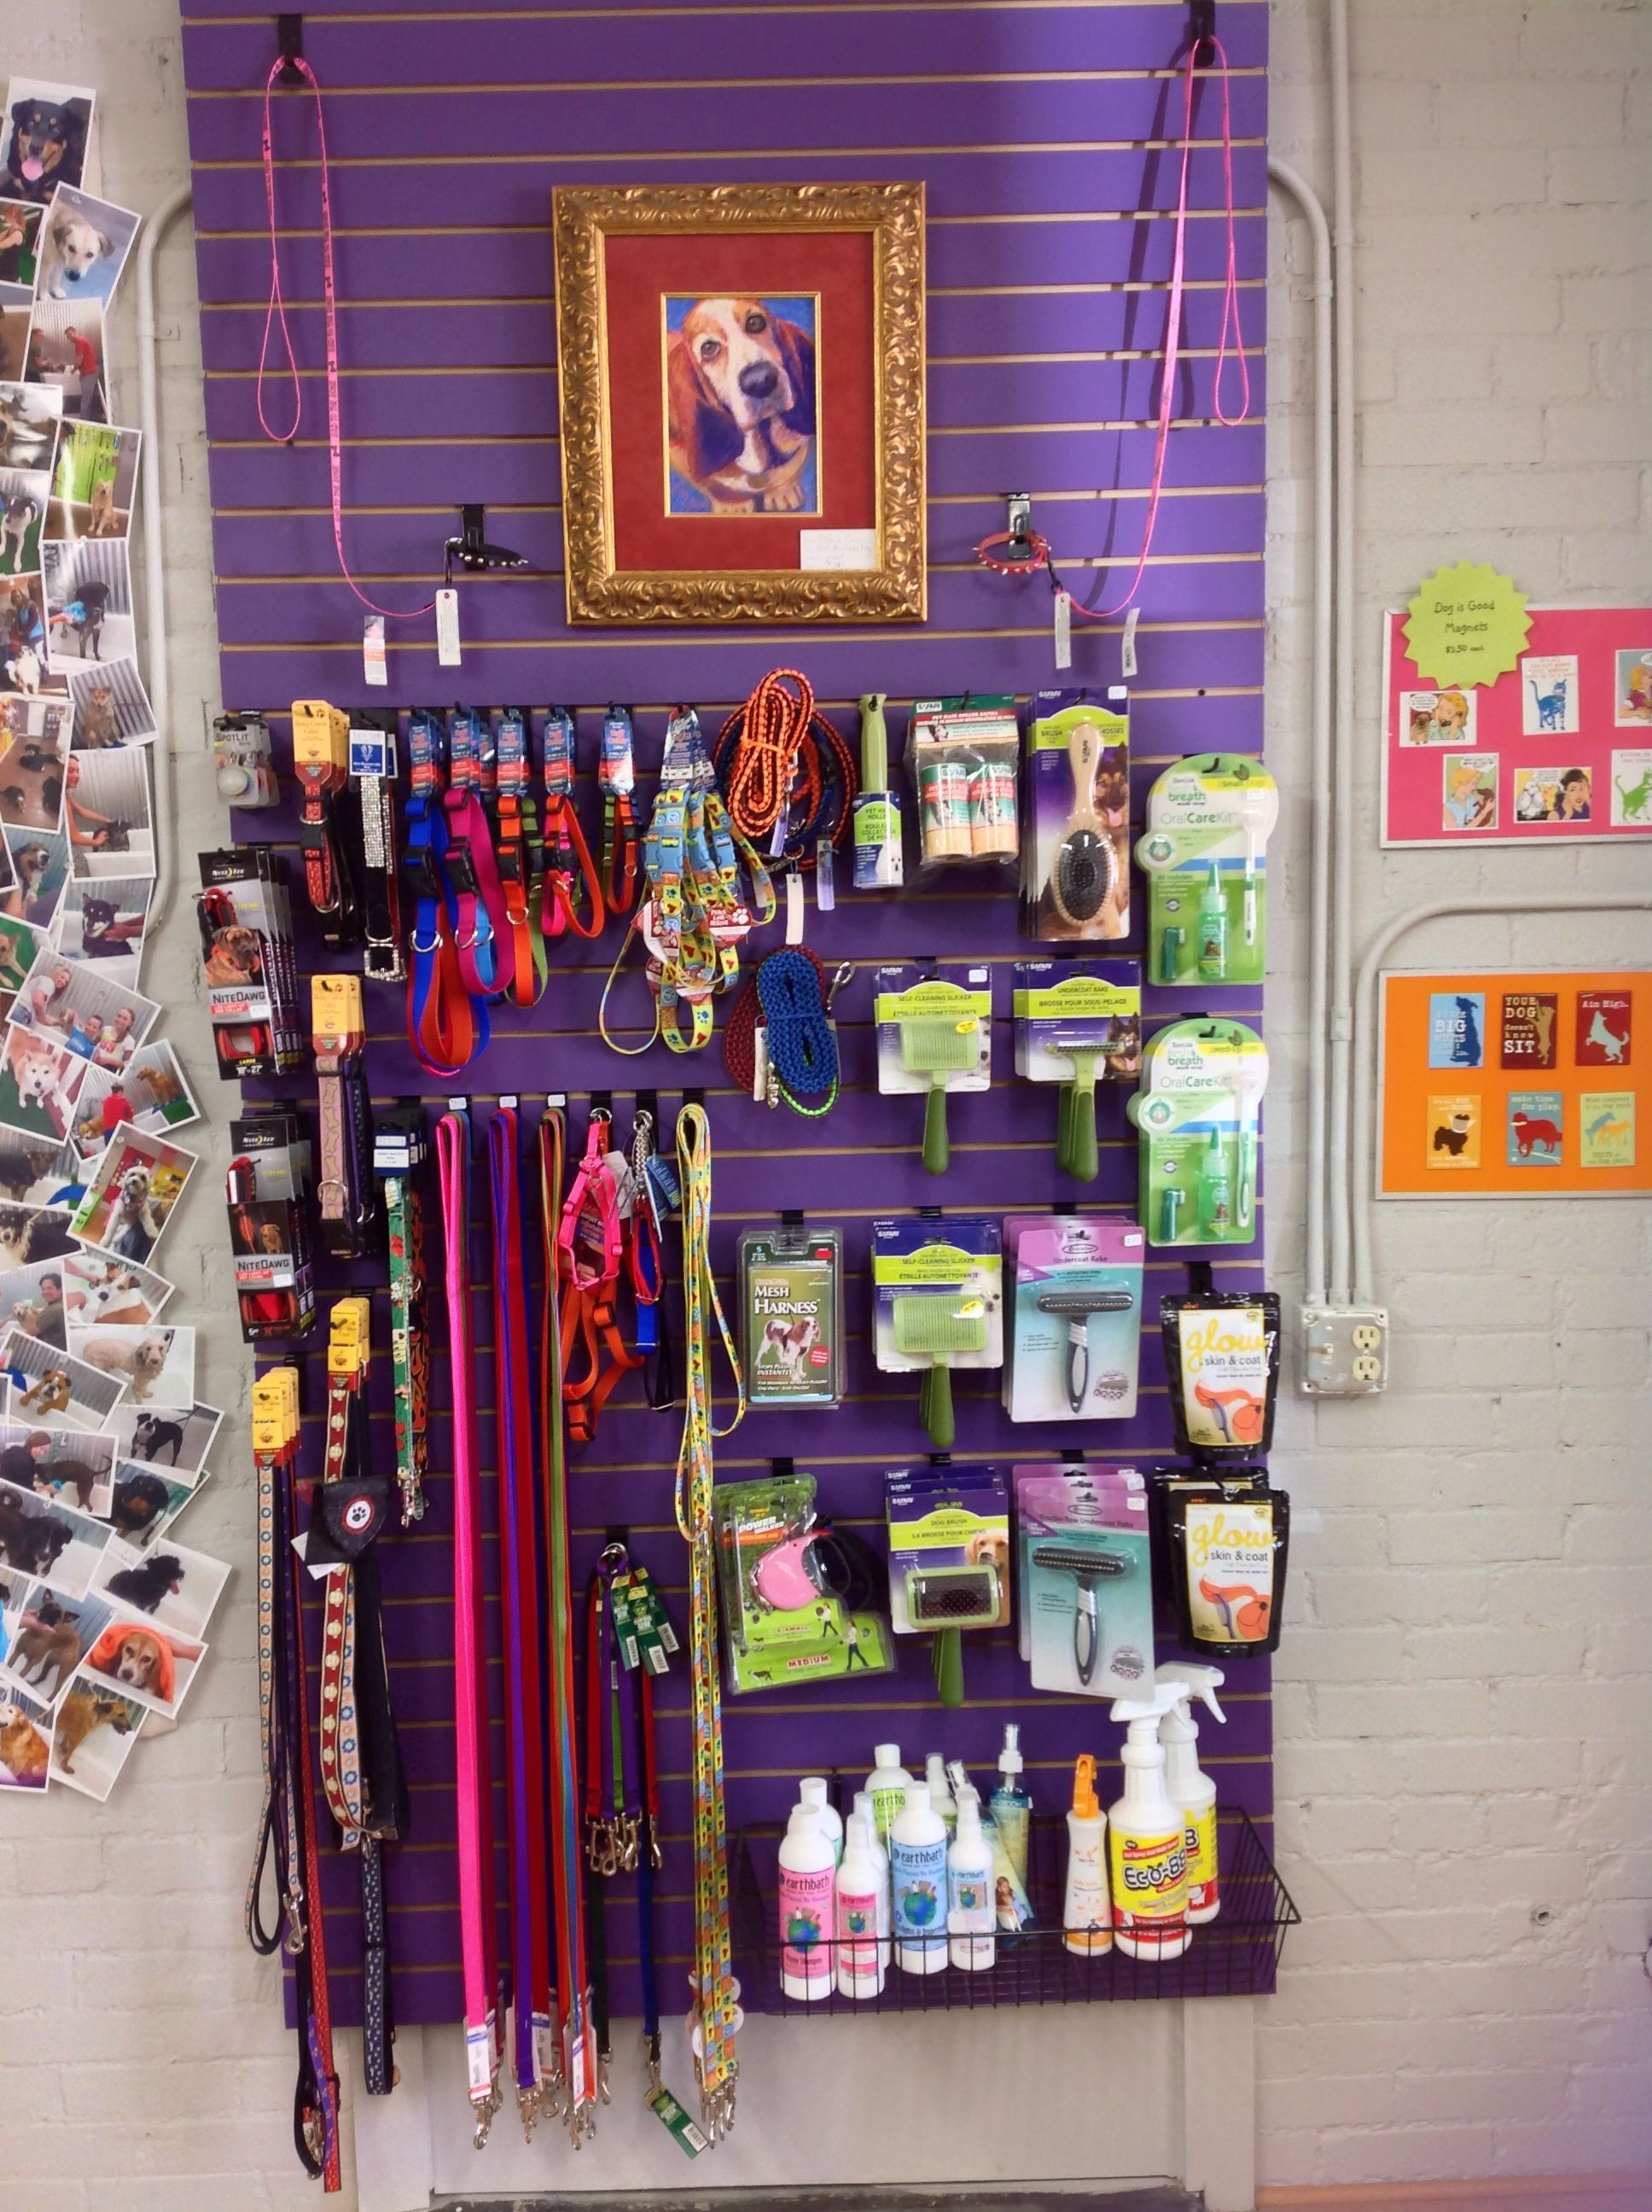 Pin by cosmic dog on cosmic dog loveland co pinterest cosmic cosmic dog offers self serve dog washes homemade treats toys food local art and unique gift items solutioingenieria Gallery